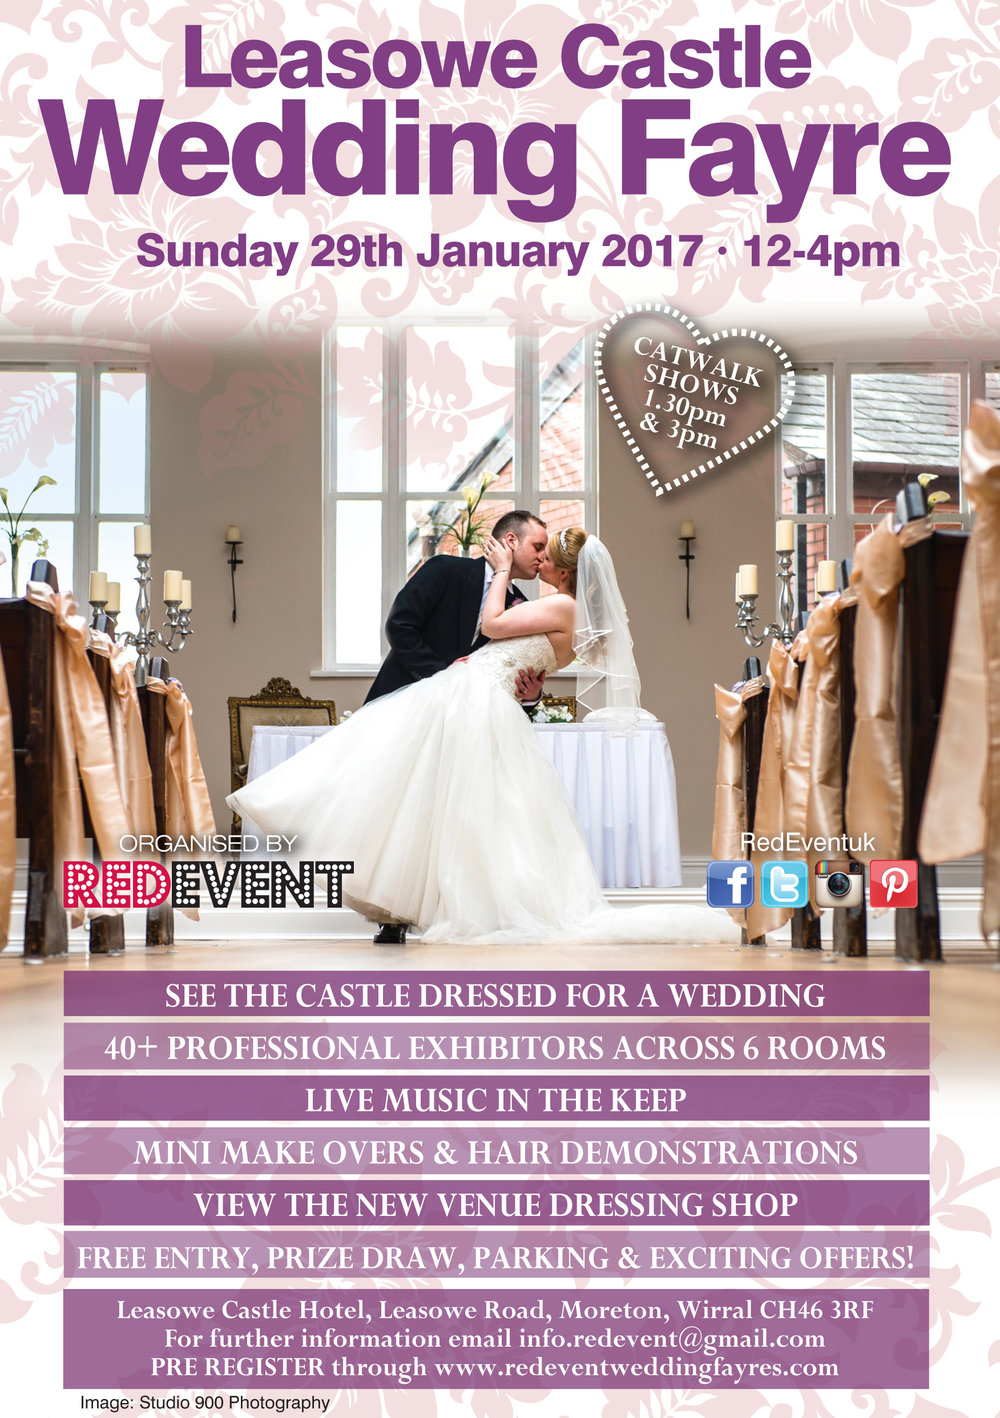 1. Leasowe Castle Spring 2017 Wedding Fayre Wirral, North West Wedding Fayre, Chester Wedding Fair, Merseyside, Cheshire Red Event